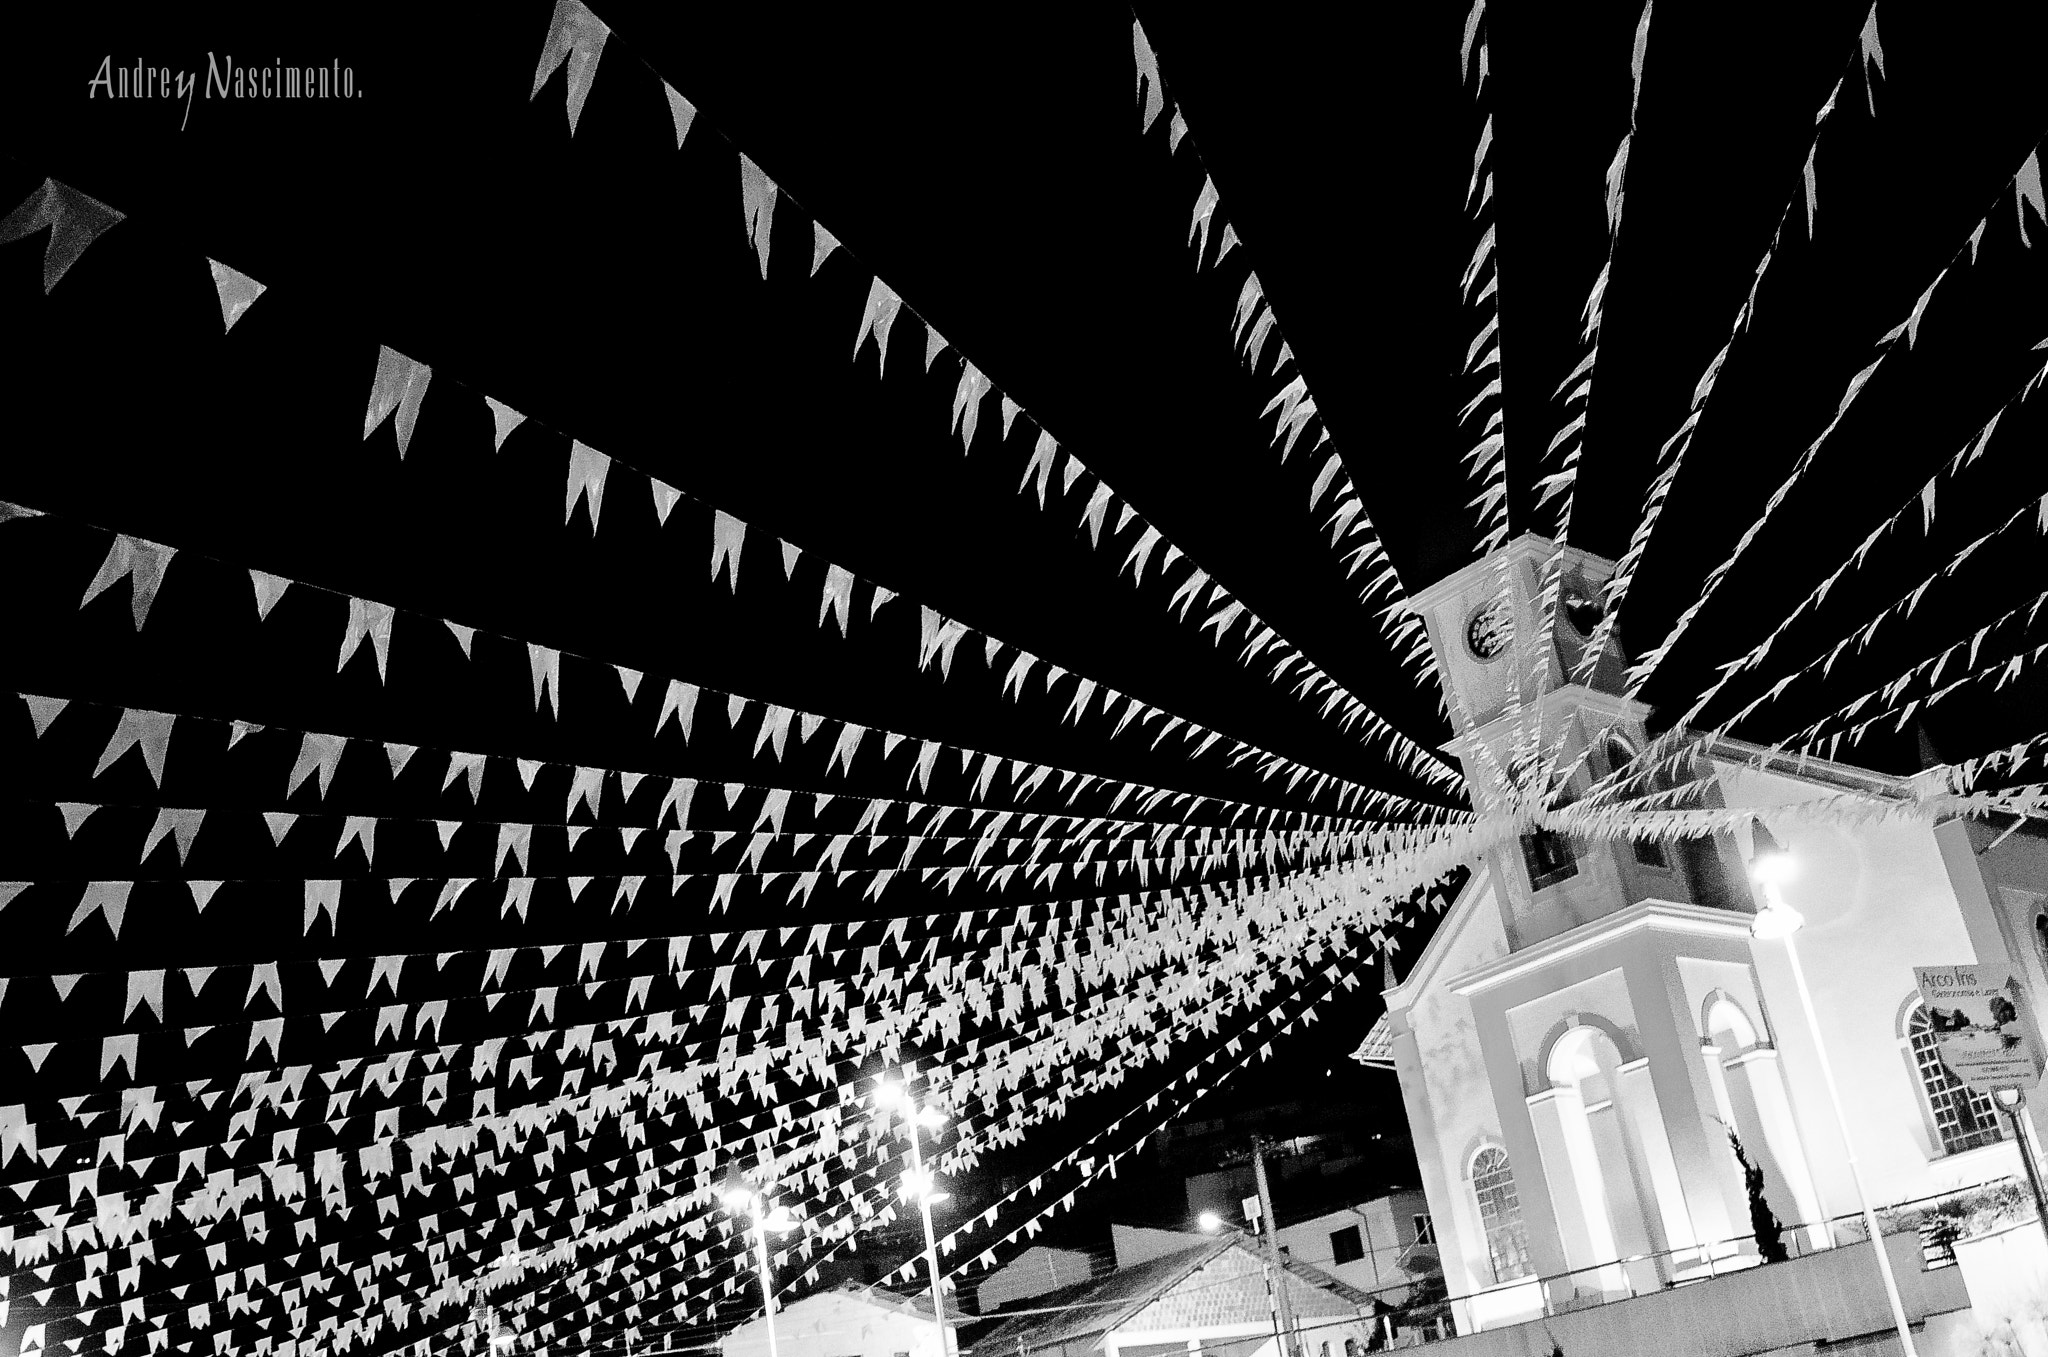 Photograph Church's Flags by Andrey Nascimento on 500px